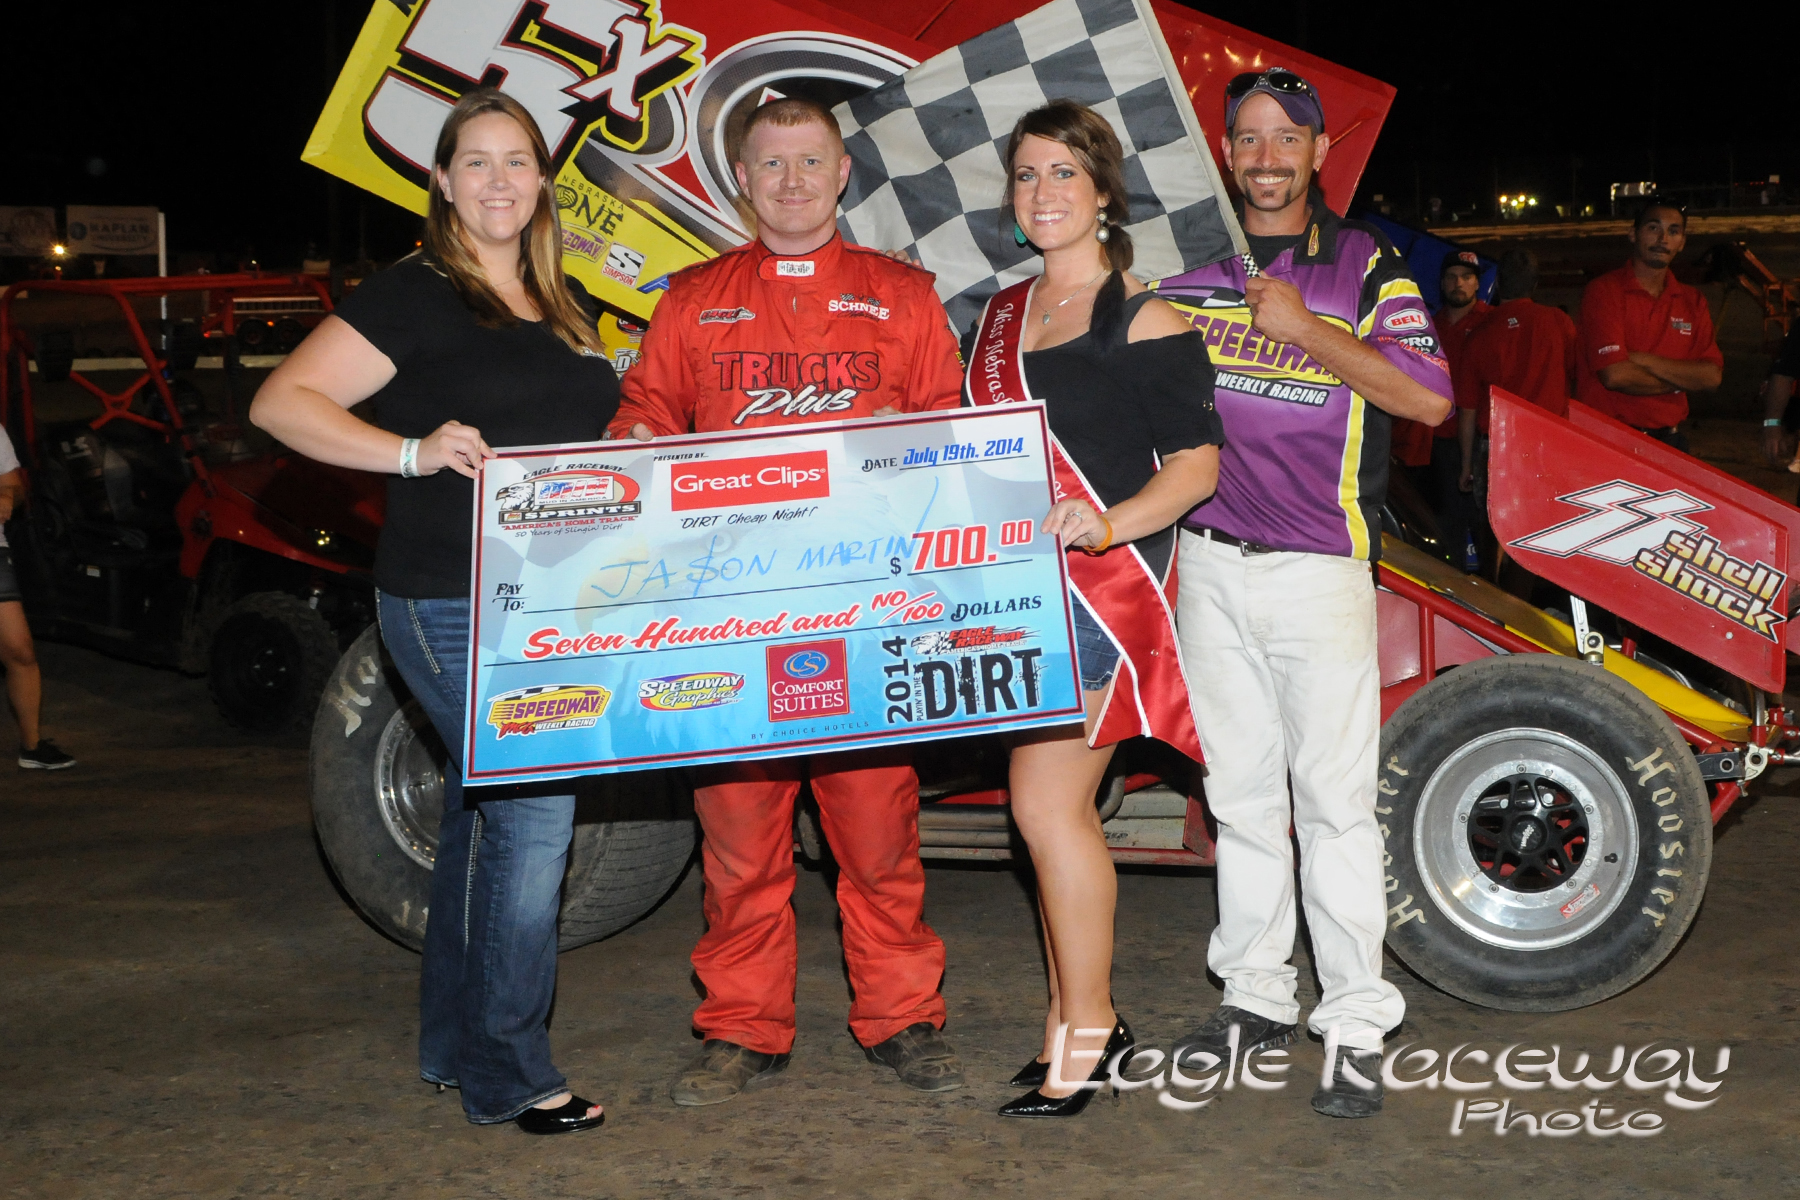 eagle-07-19-14-413-jason-martin-with-miss-nebraska-cup-elle-patocka-and-miss-nebraska-cup-finalist-donna-hafsaas-and-flagman-billy-lloyd-joeorthphotos